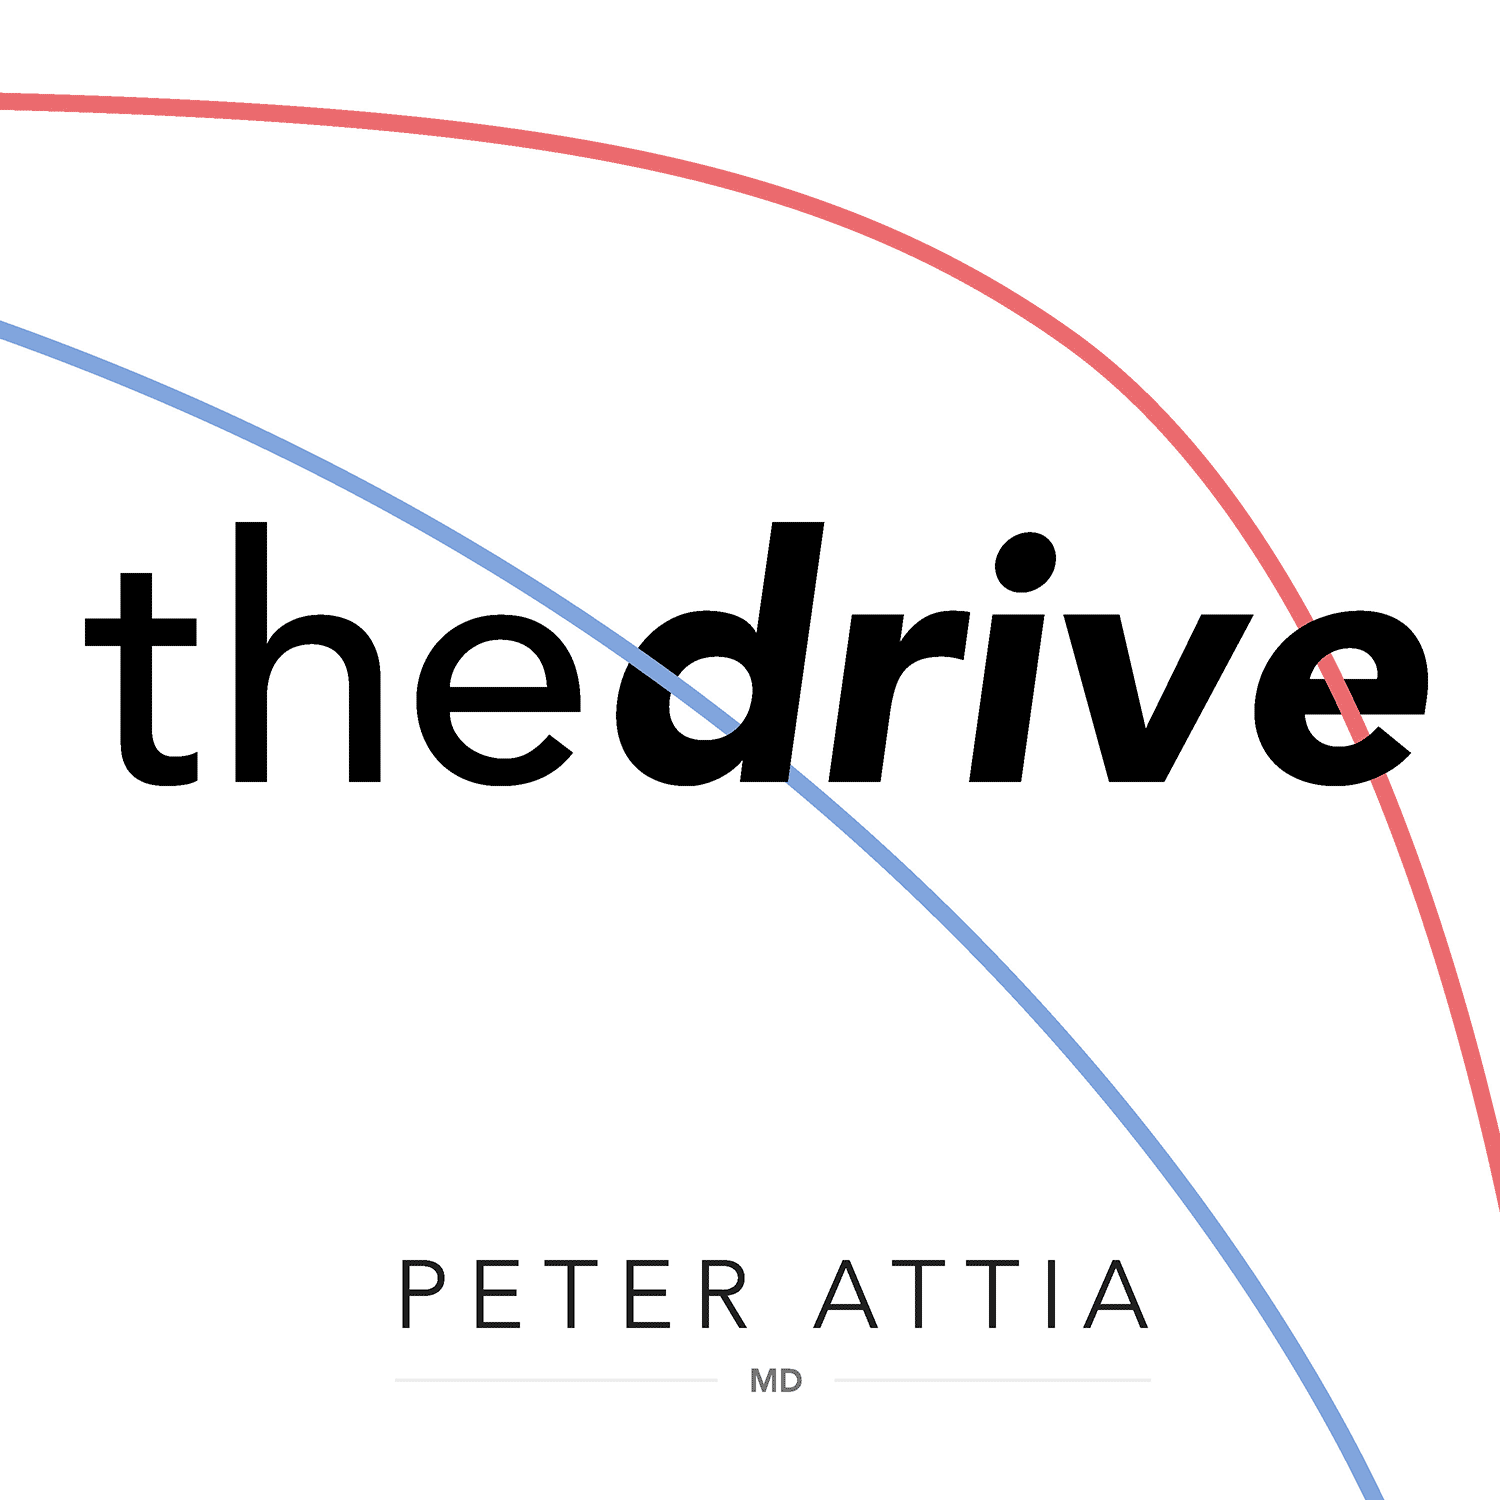 The Peter Attia Drive